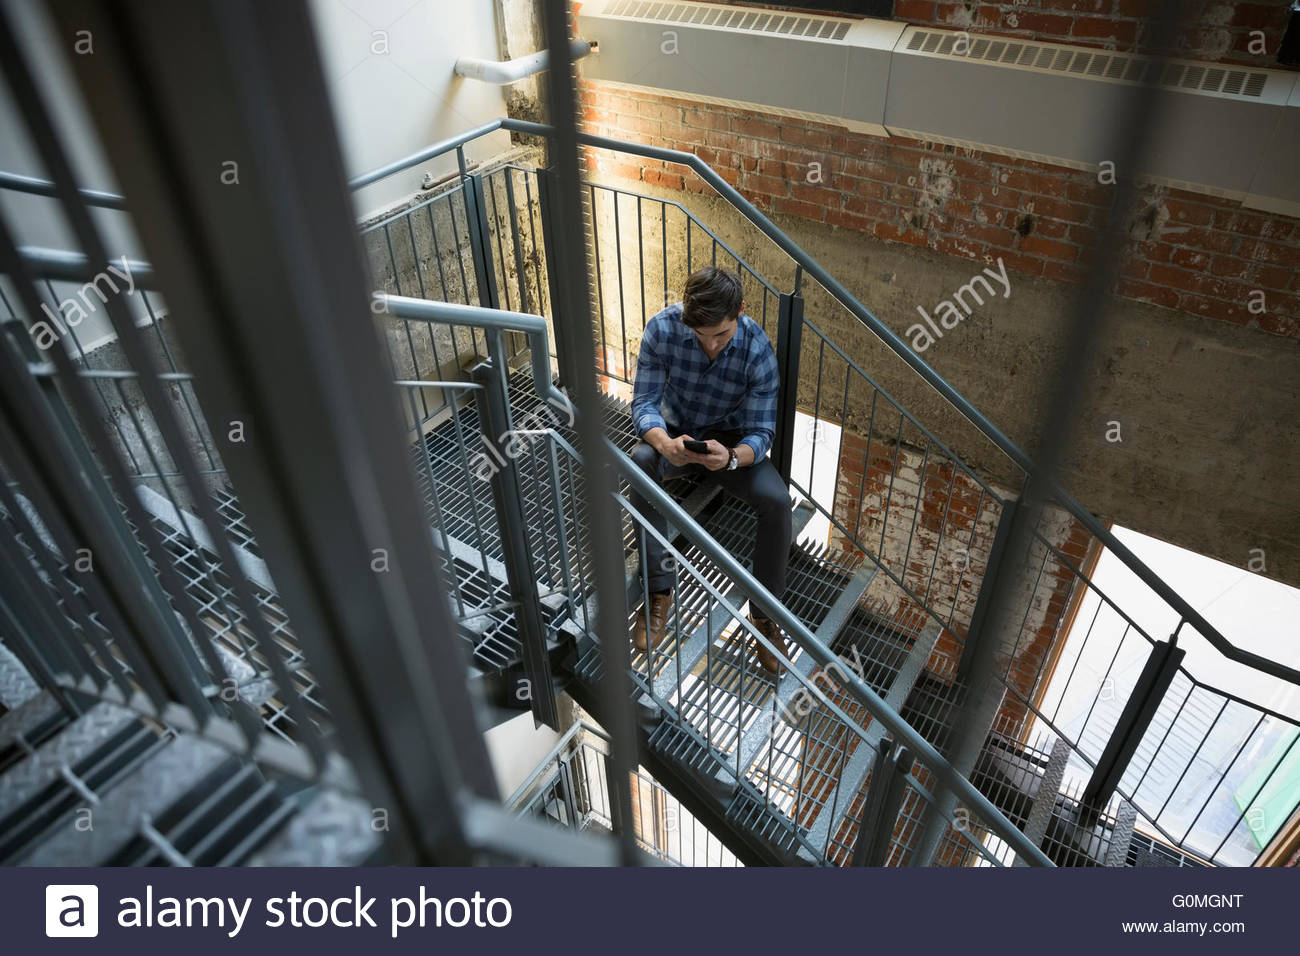 Businessman texting with cell phone in stairwell - Stock Image